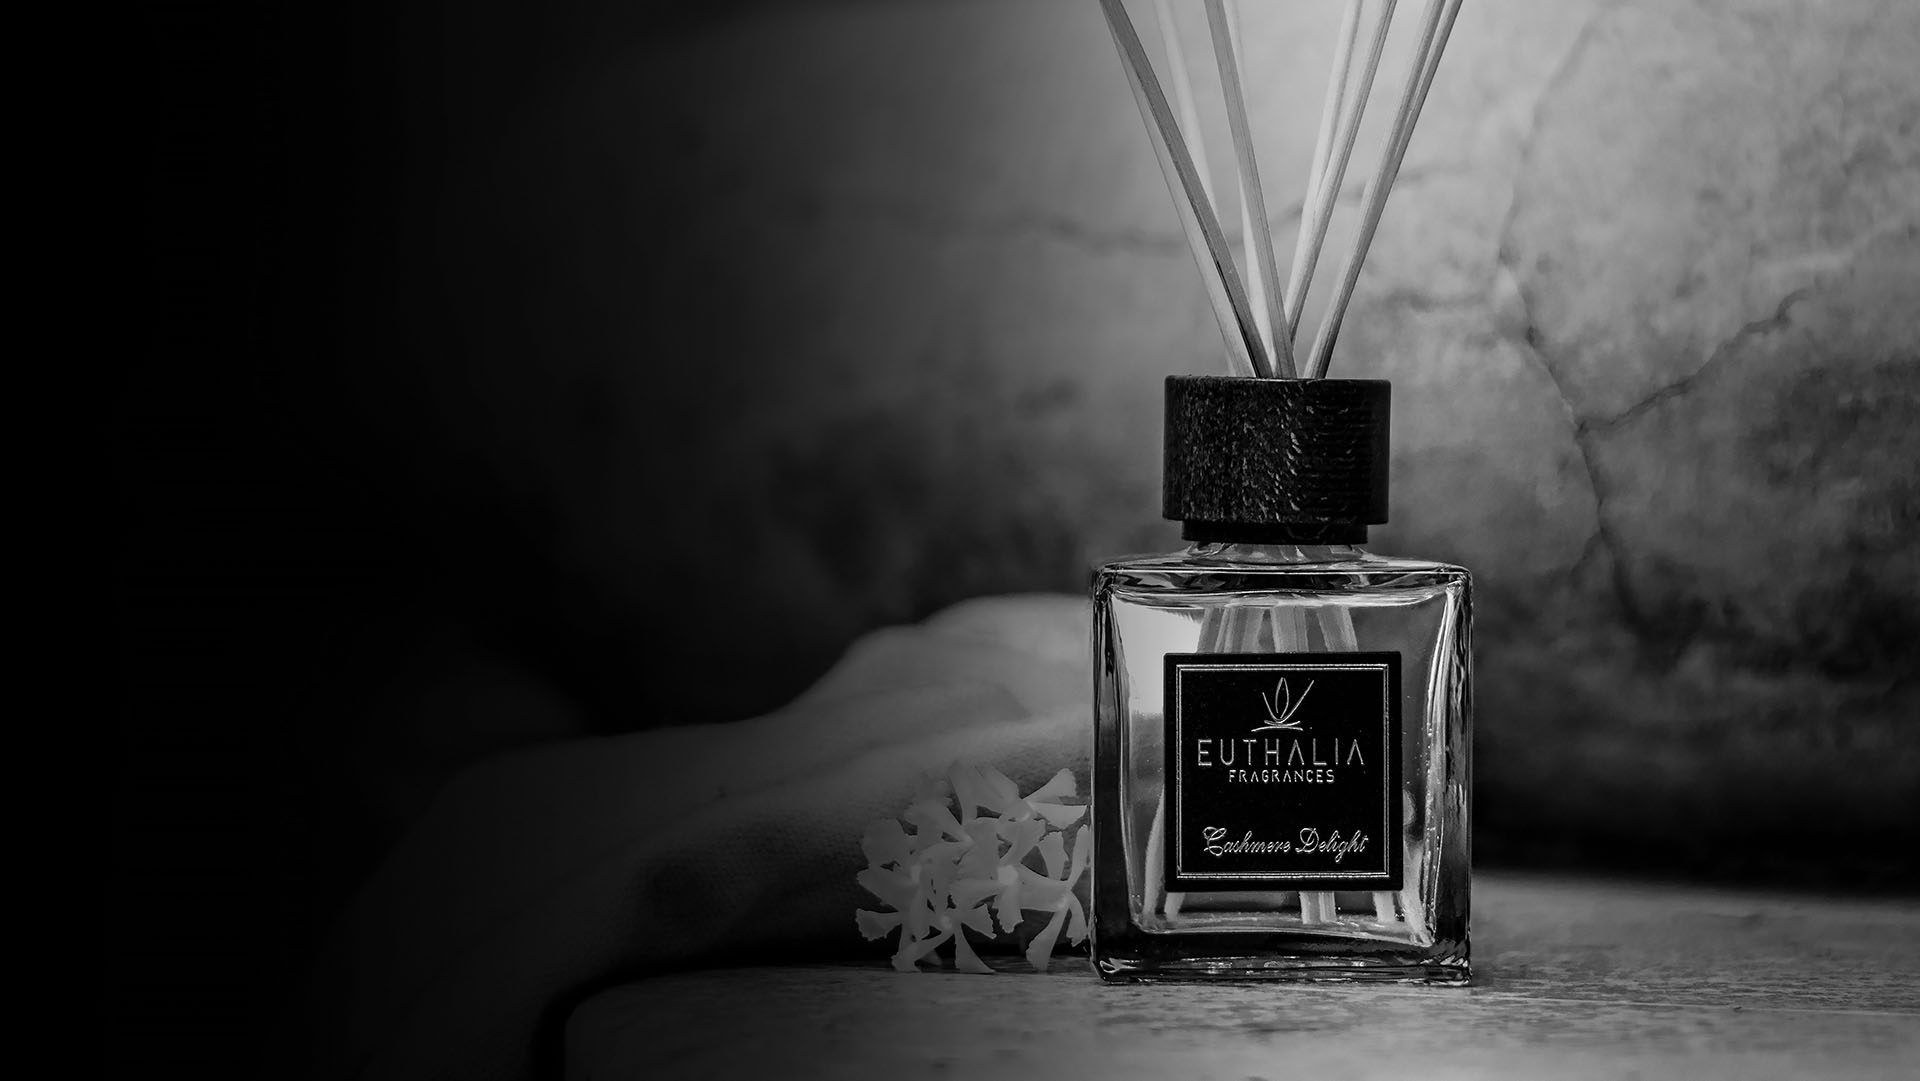 Euthalia Fragrances